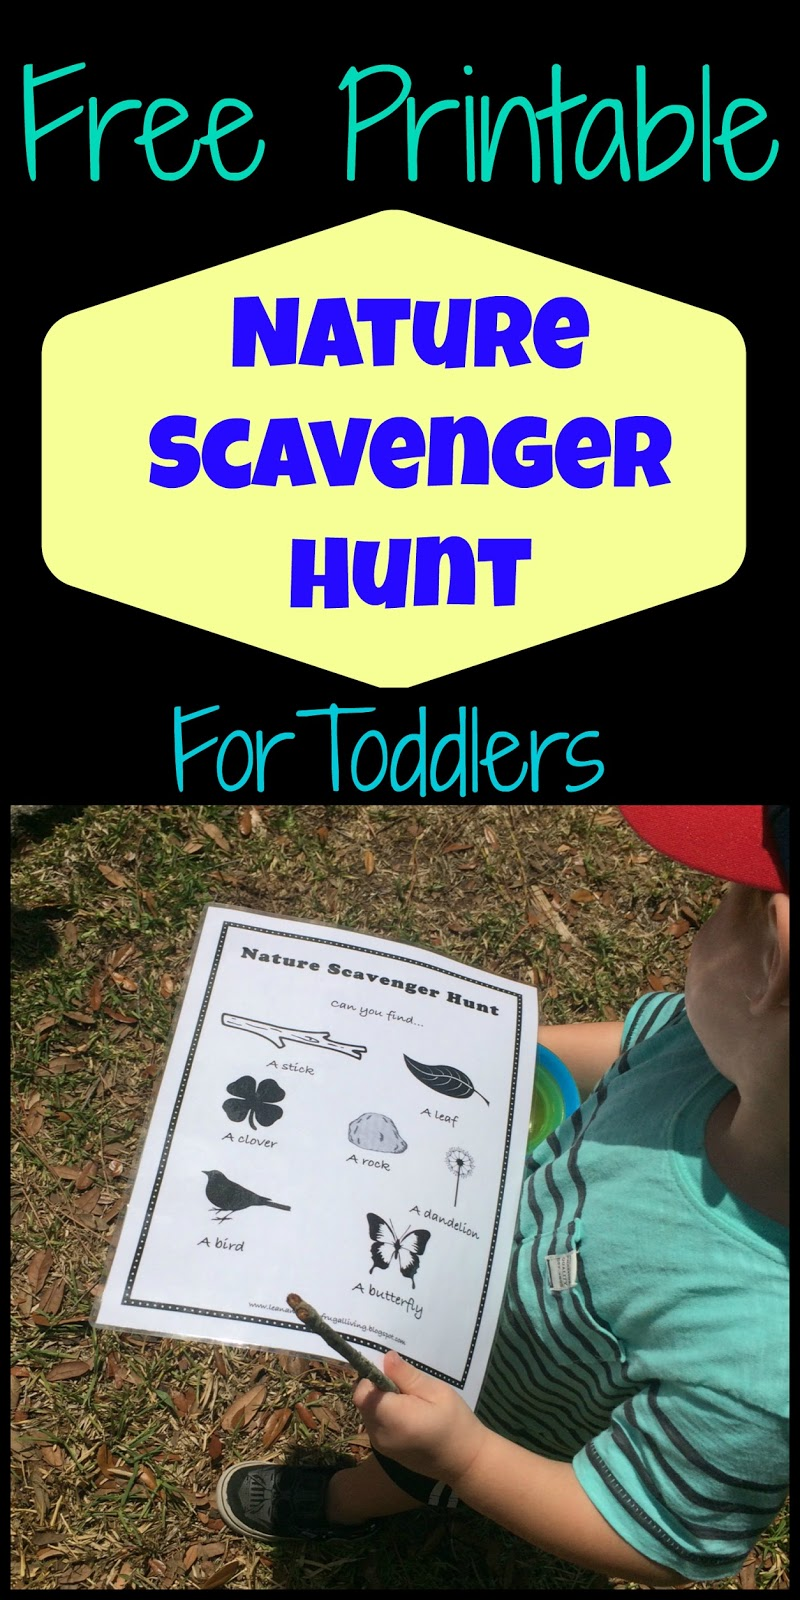 Free Printable Nature Scavenger Hunt for Toddlers